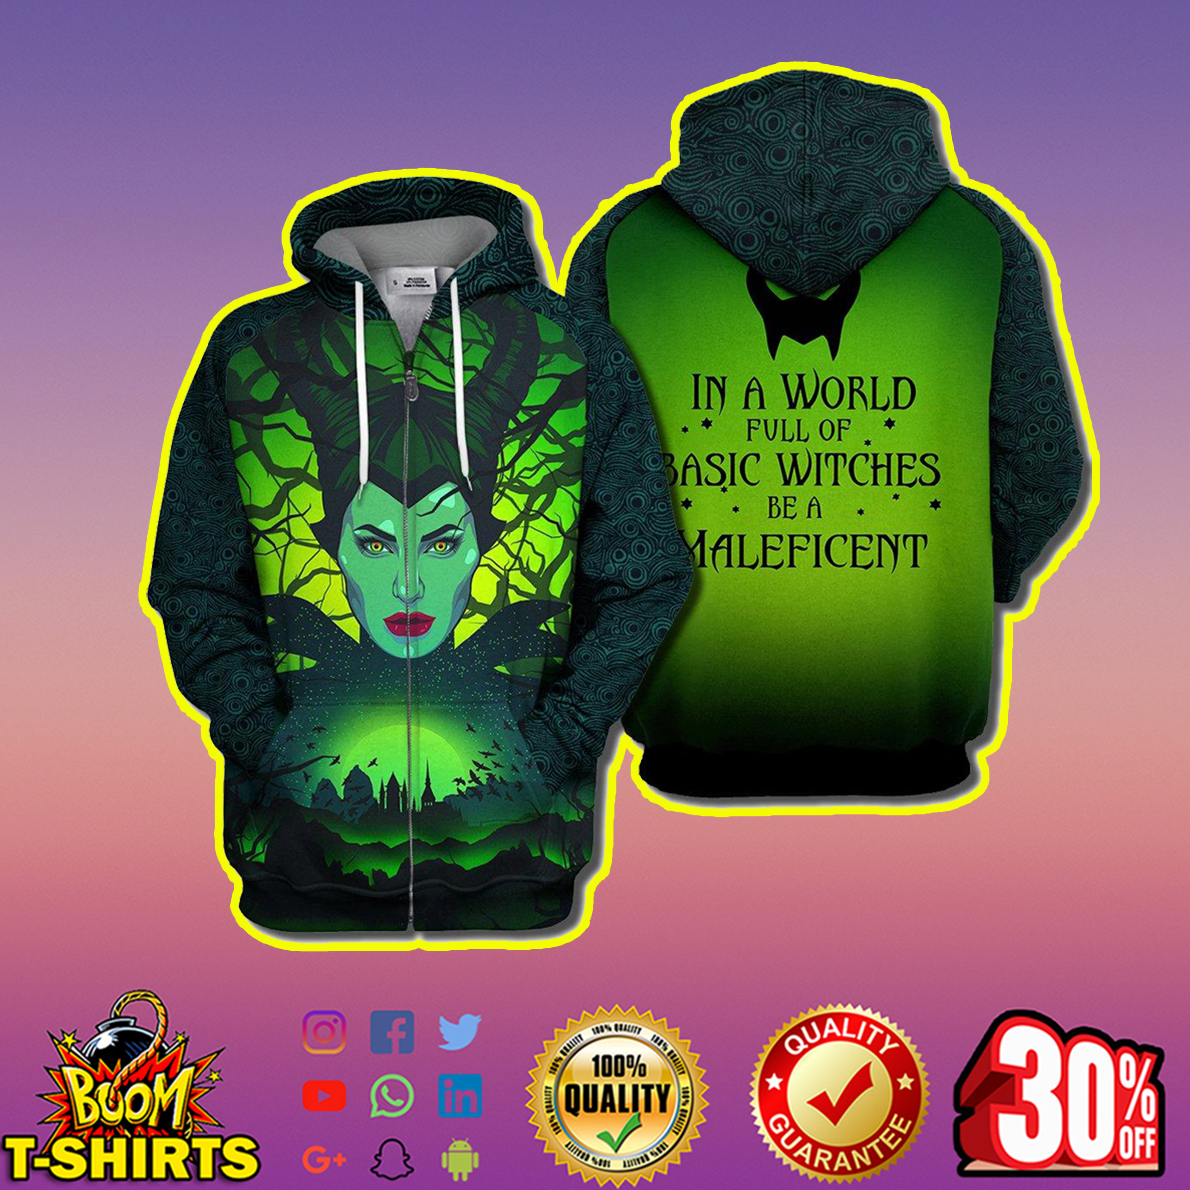 In a world full of basic witches be a Maleficent 3d print zip hoodie